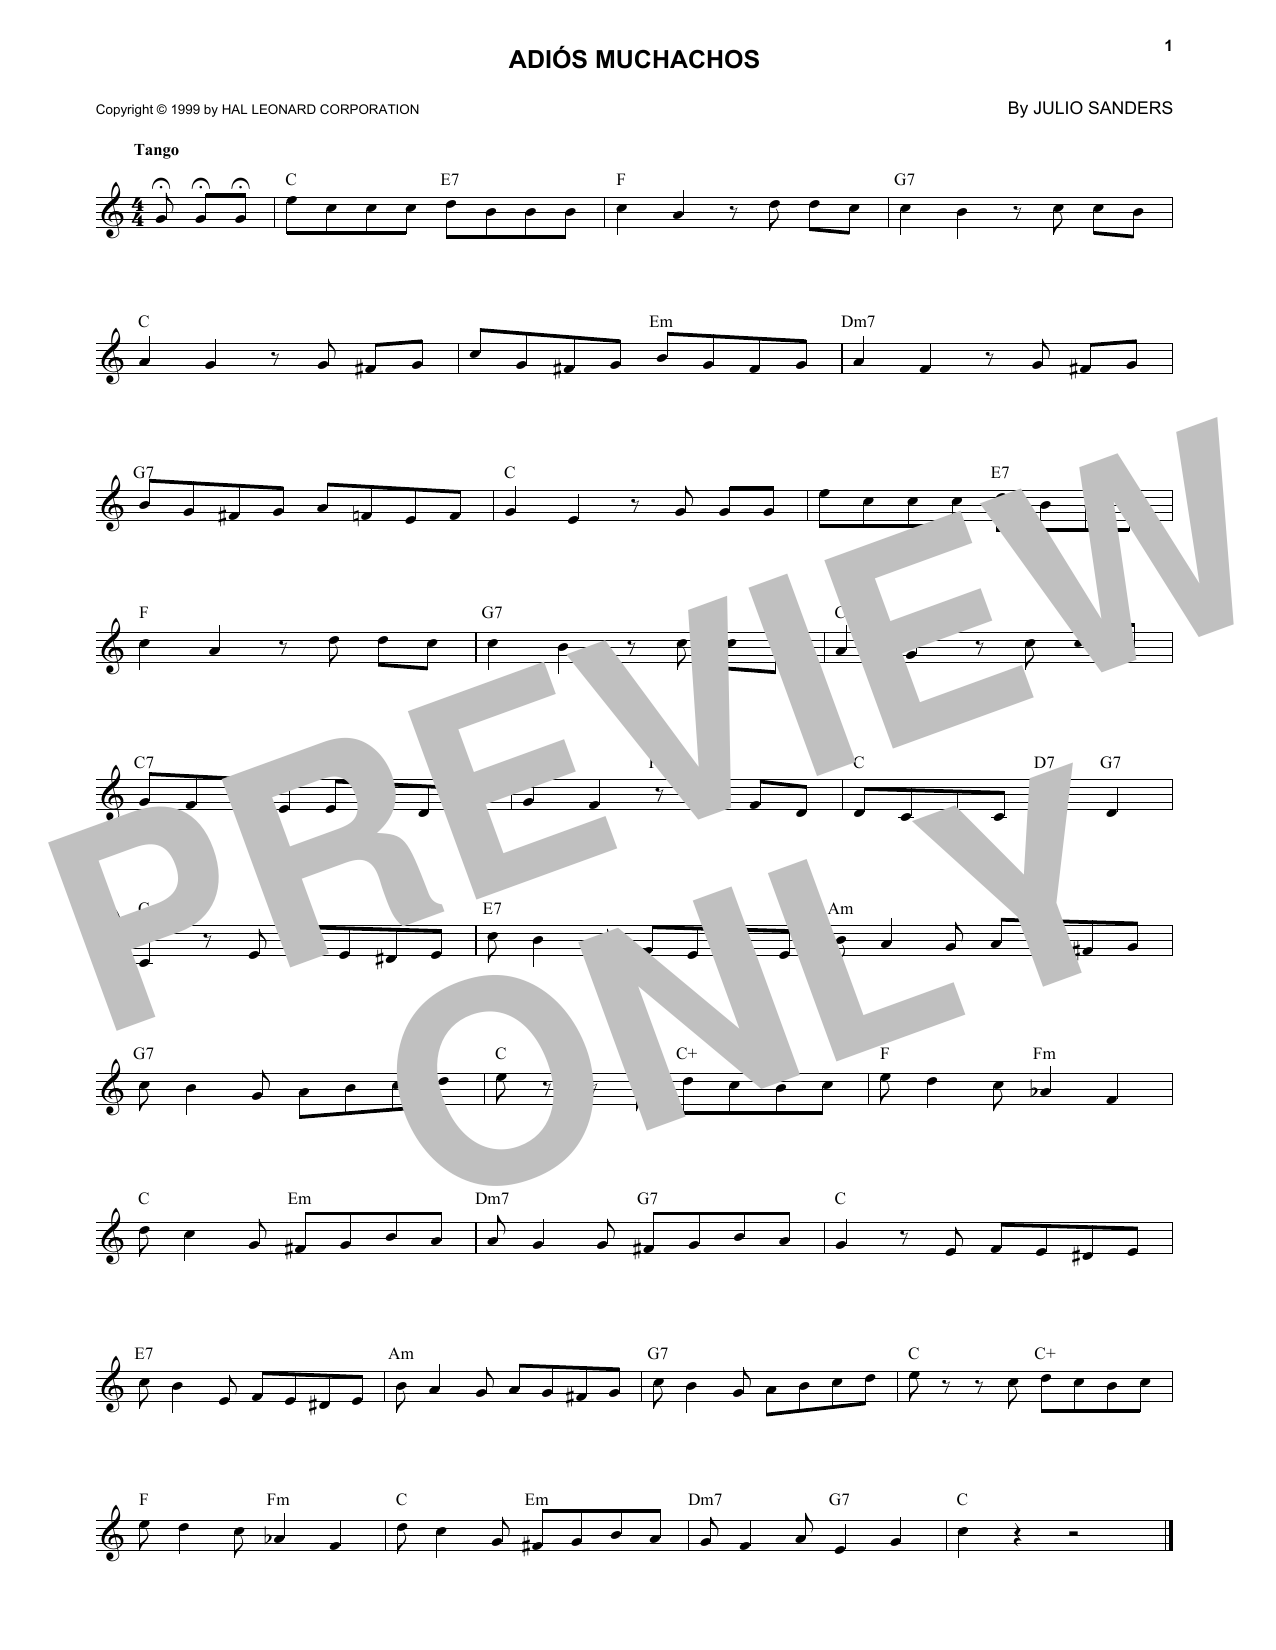 Julio Sanders Adios Muchachos sheet music notes and chords. Download Printable PDF.